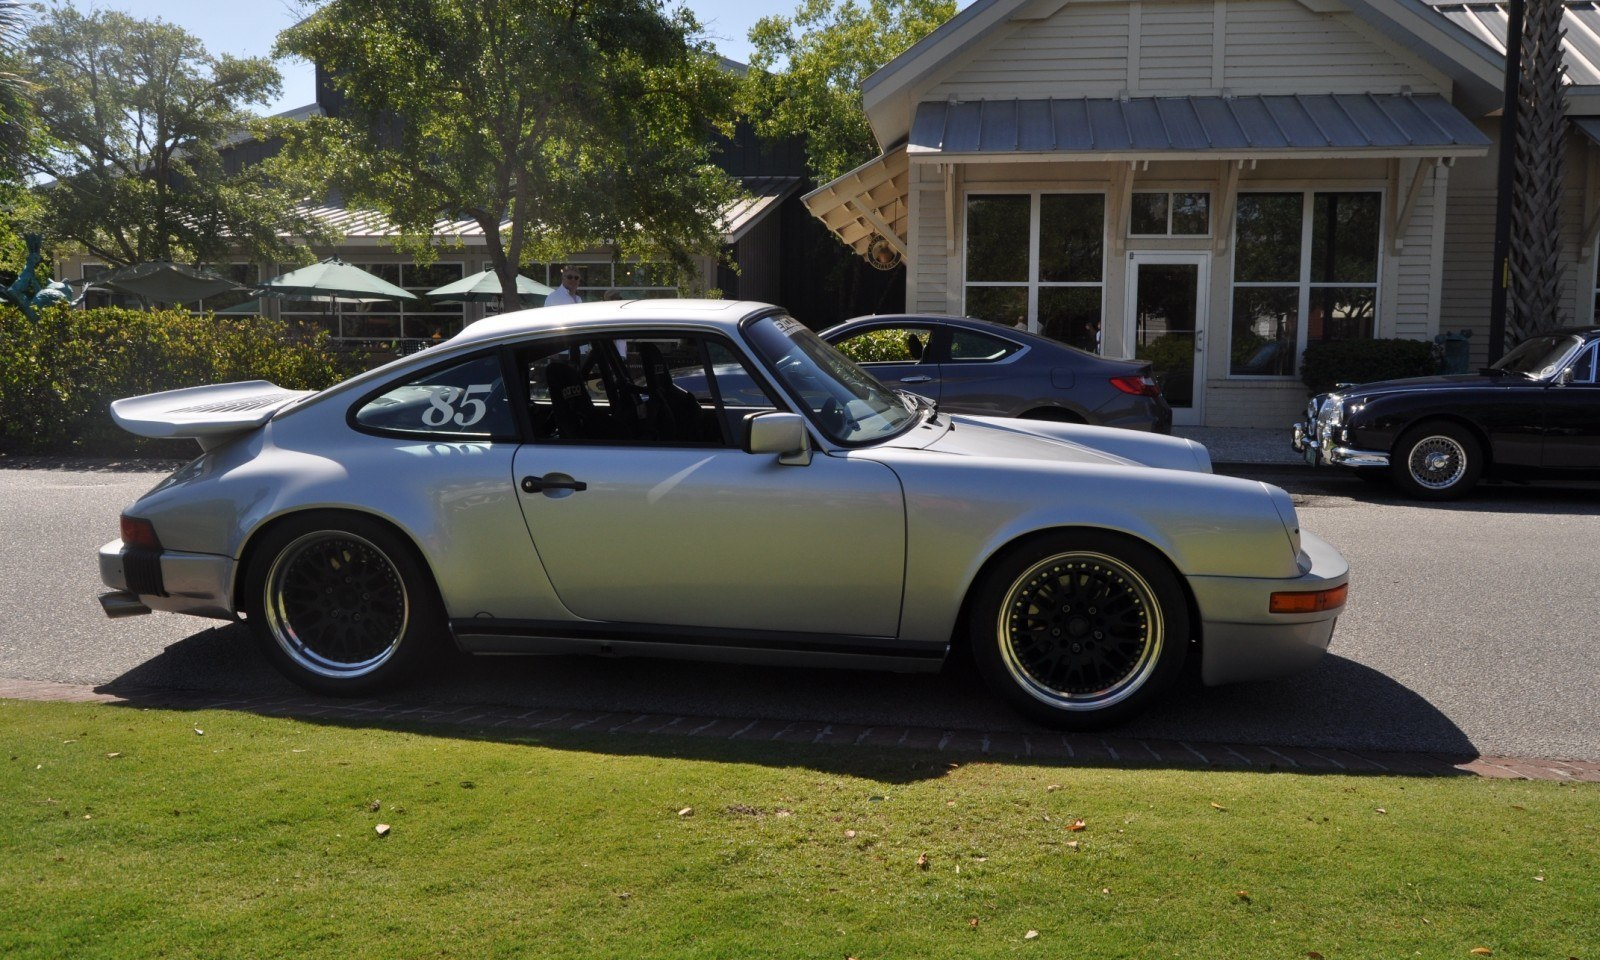 Track-Prepped Porsche 986 911 Whale Tale Is Mighty Desirable Machine 15